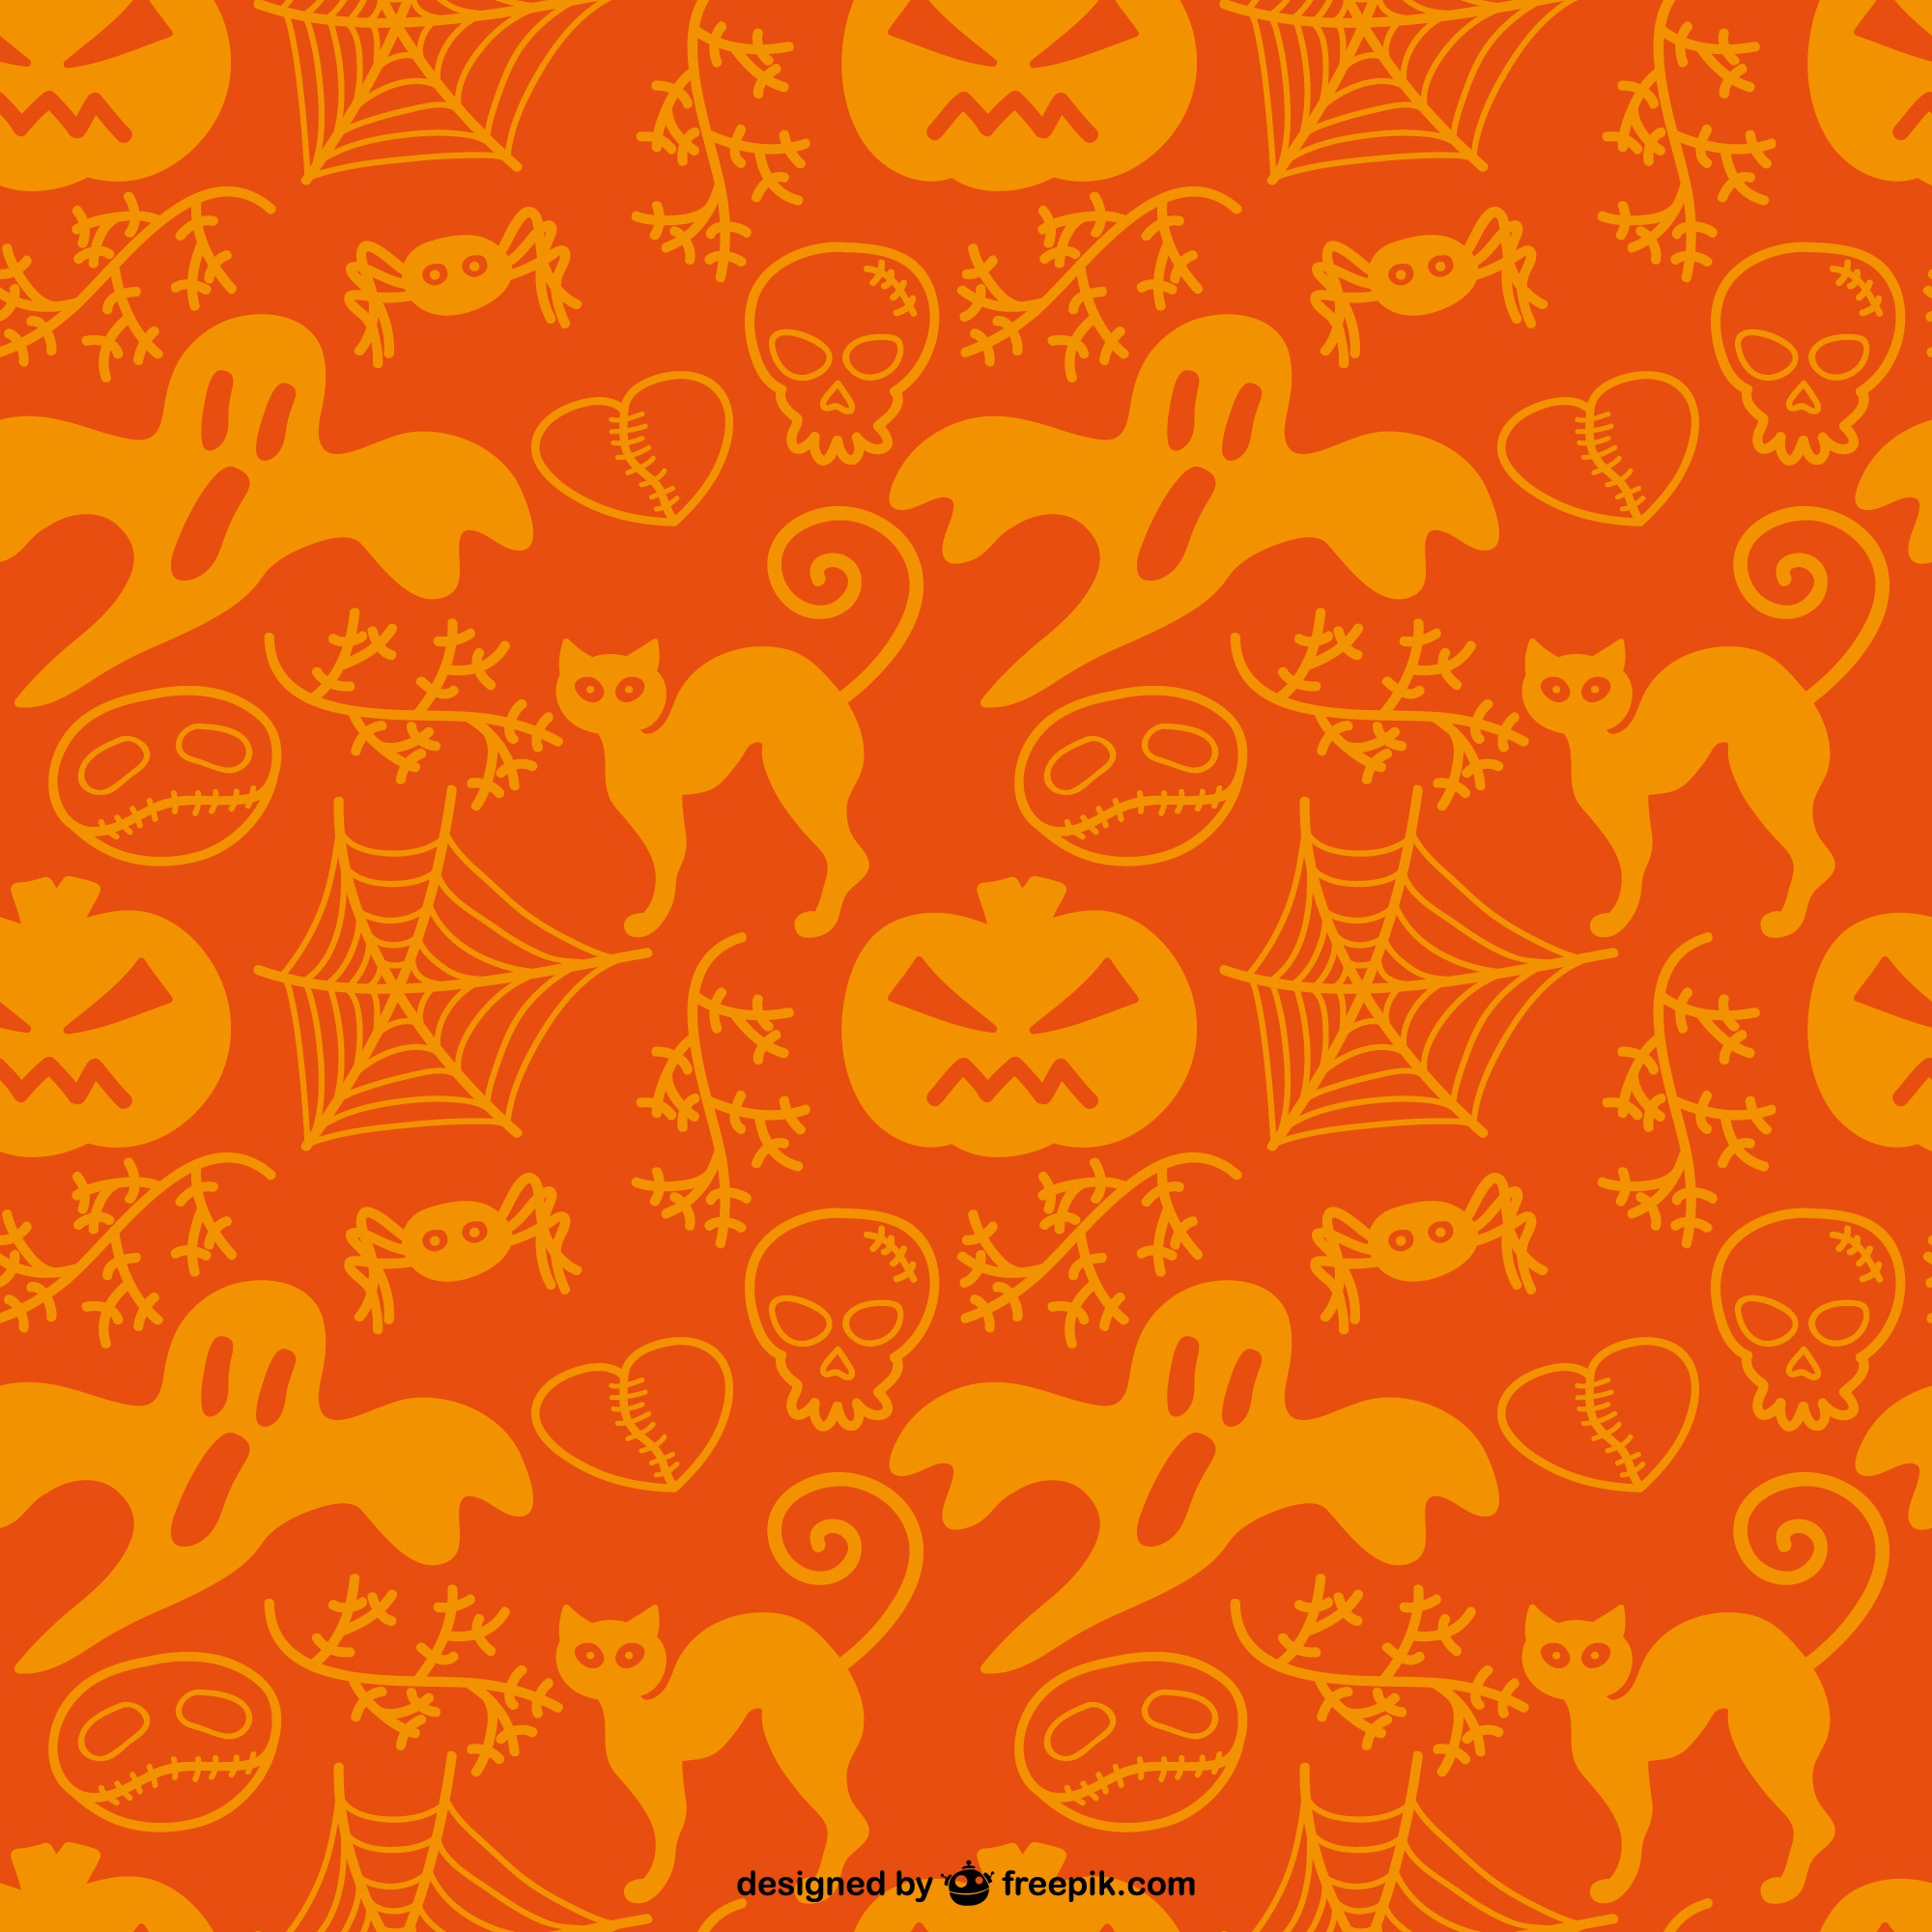 Free pattern of halloween silhouettes